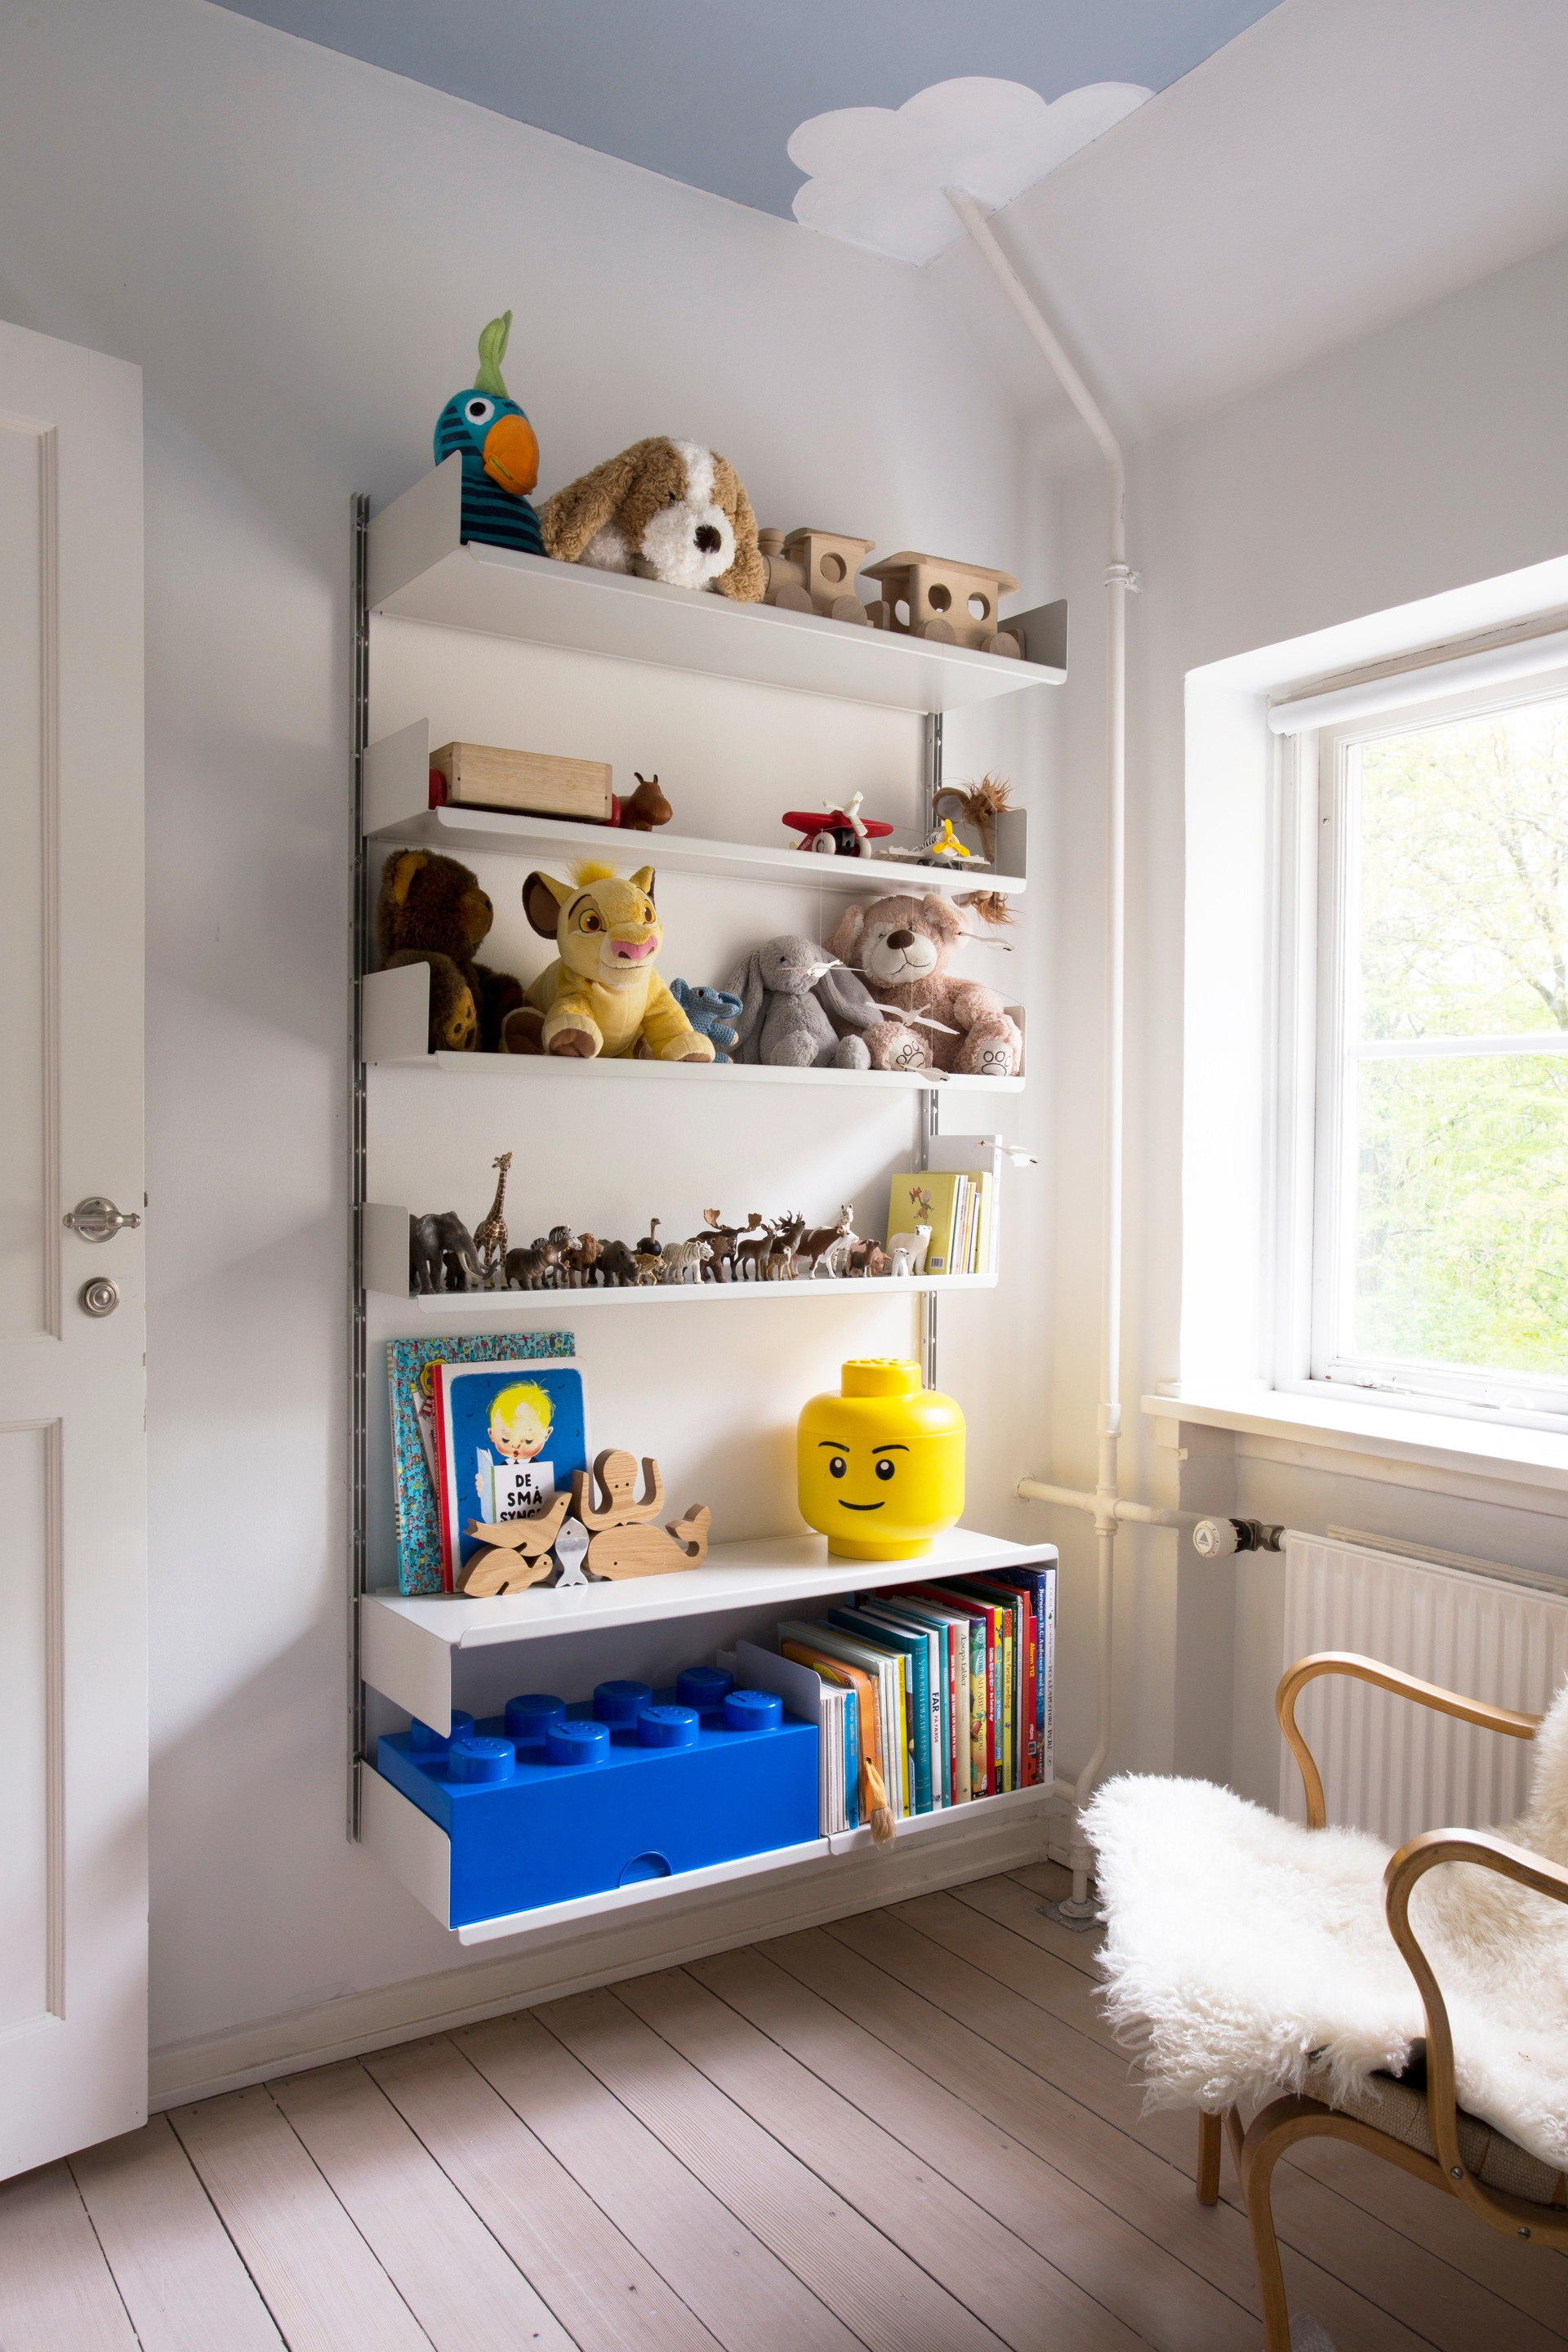 606 Universal Shelving System for kids